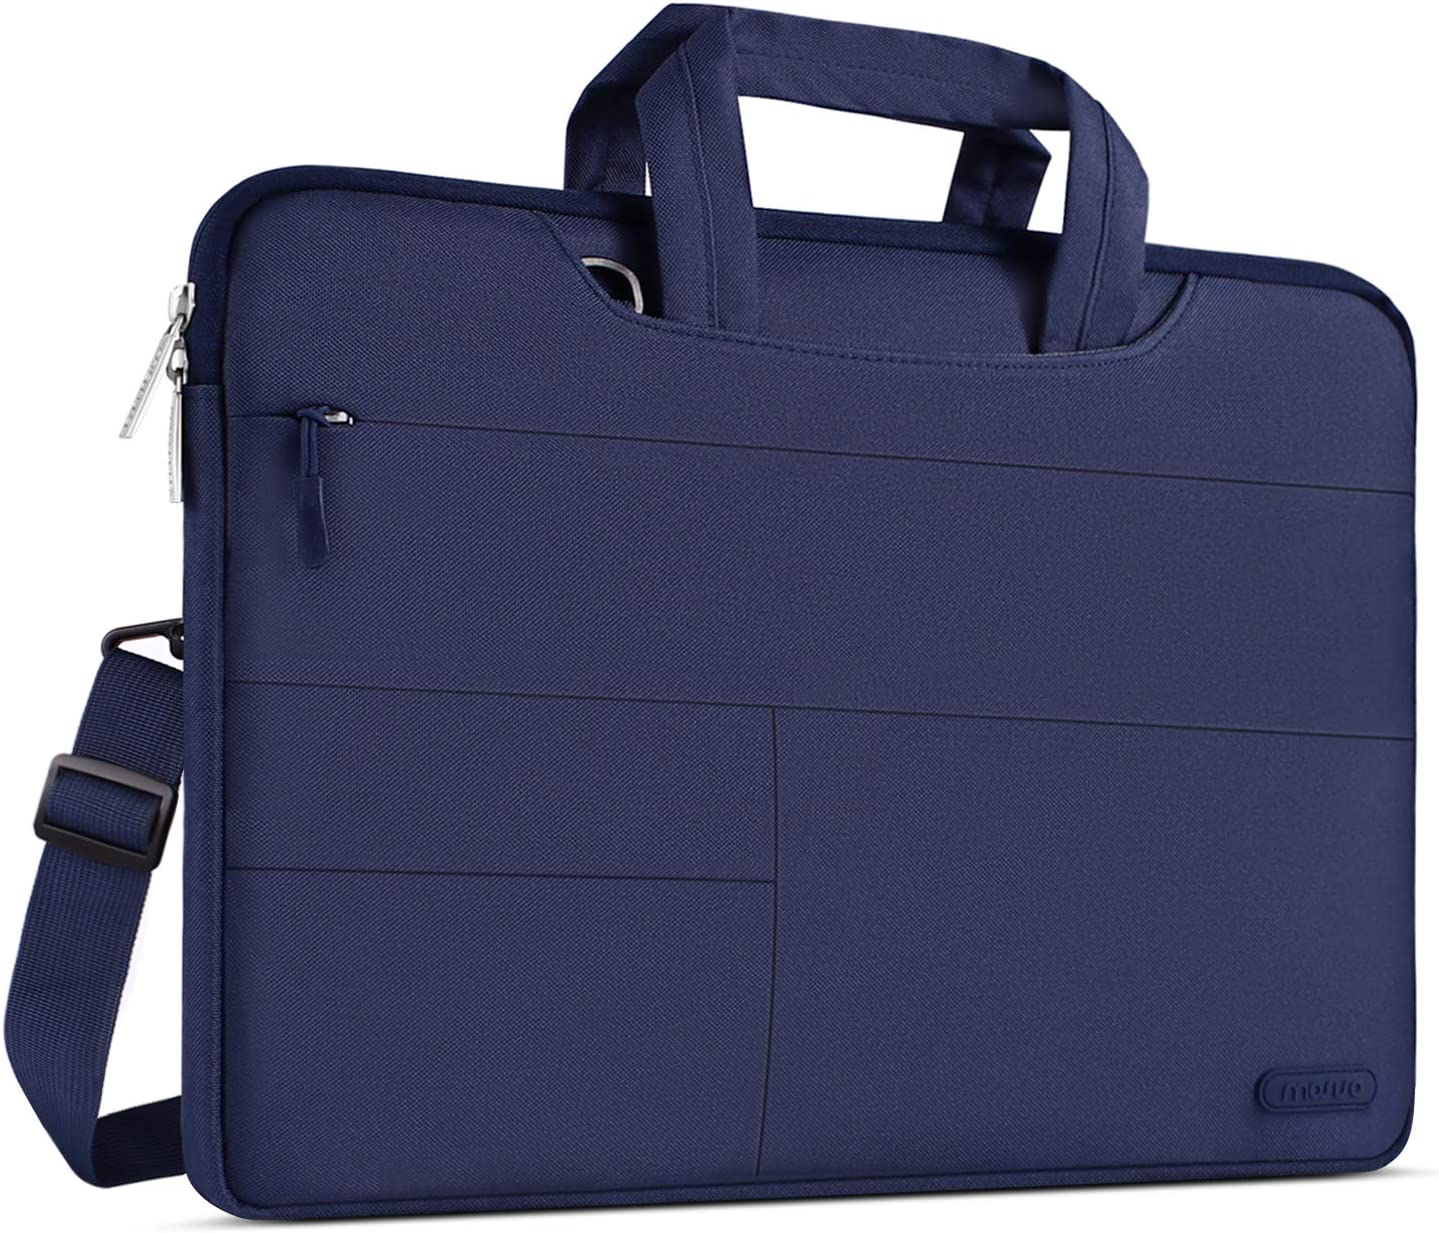 MOSISO Laptop Shoulder Bag Compatible with MacBook Pro 16 inch, 15 15.4 15.6 inch Dell Lenovo HP Asus Acer Samsung Sony Chromebook, Polyester Briefcase Sleeve with Front Storage Pockets, Navy Blue